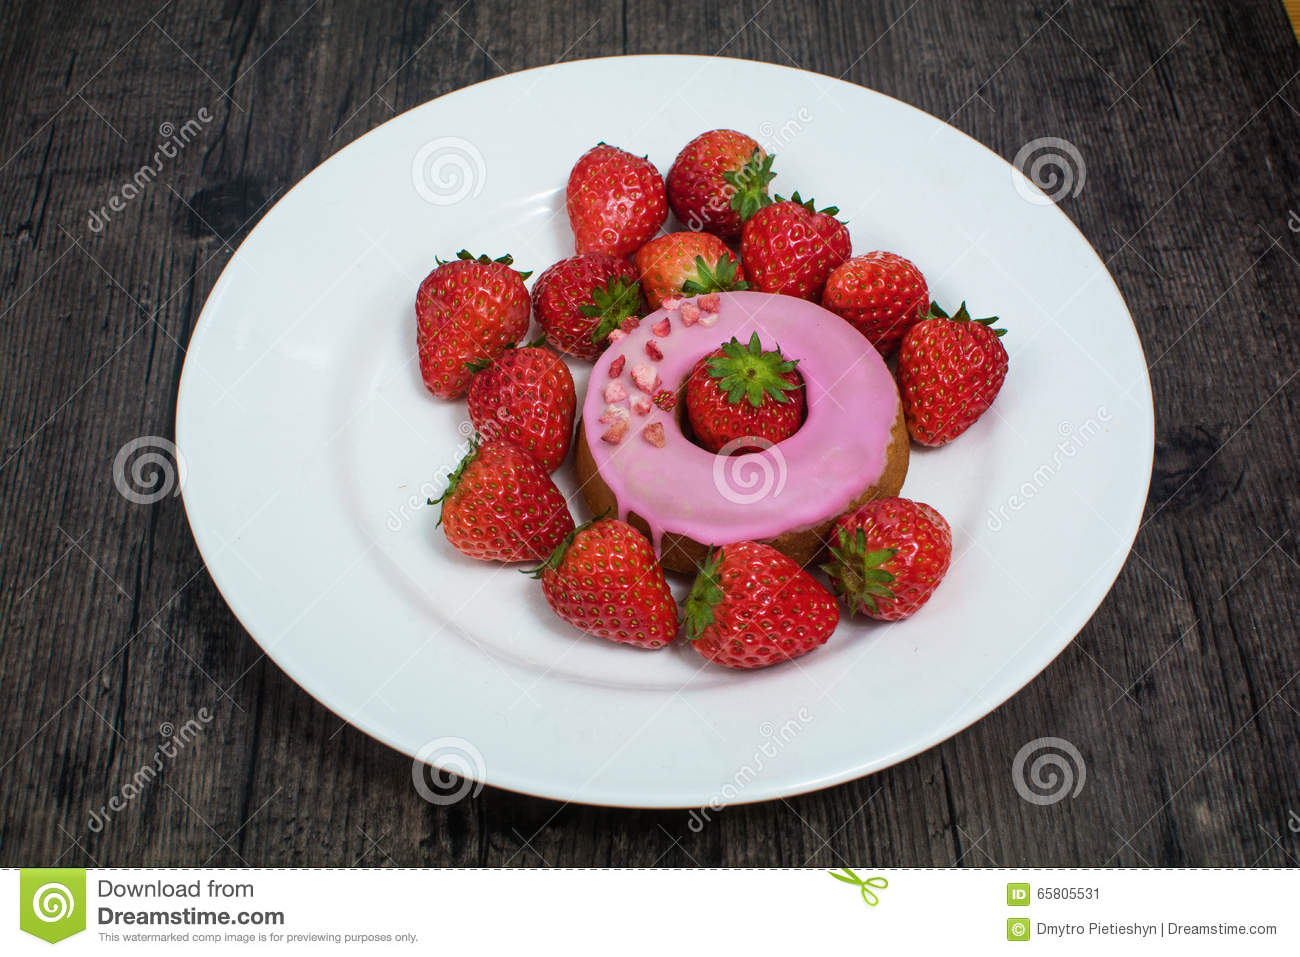 Donut and strawberry on the plate